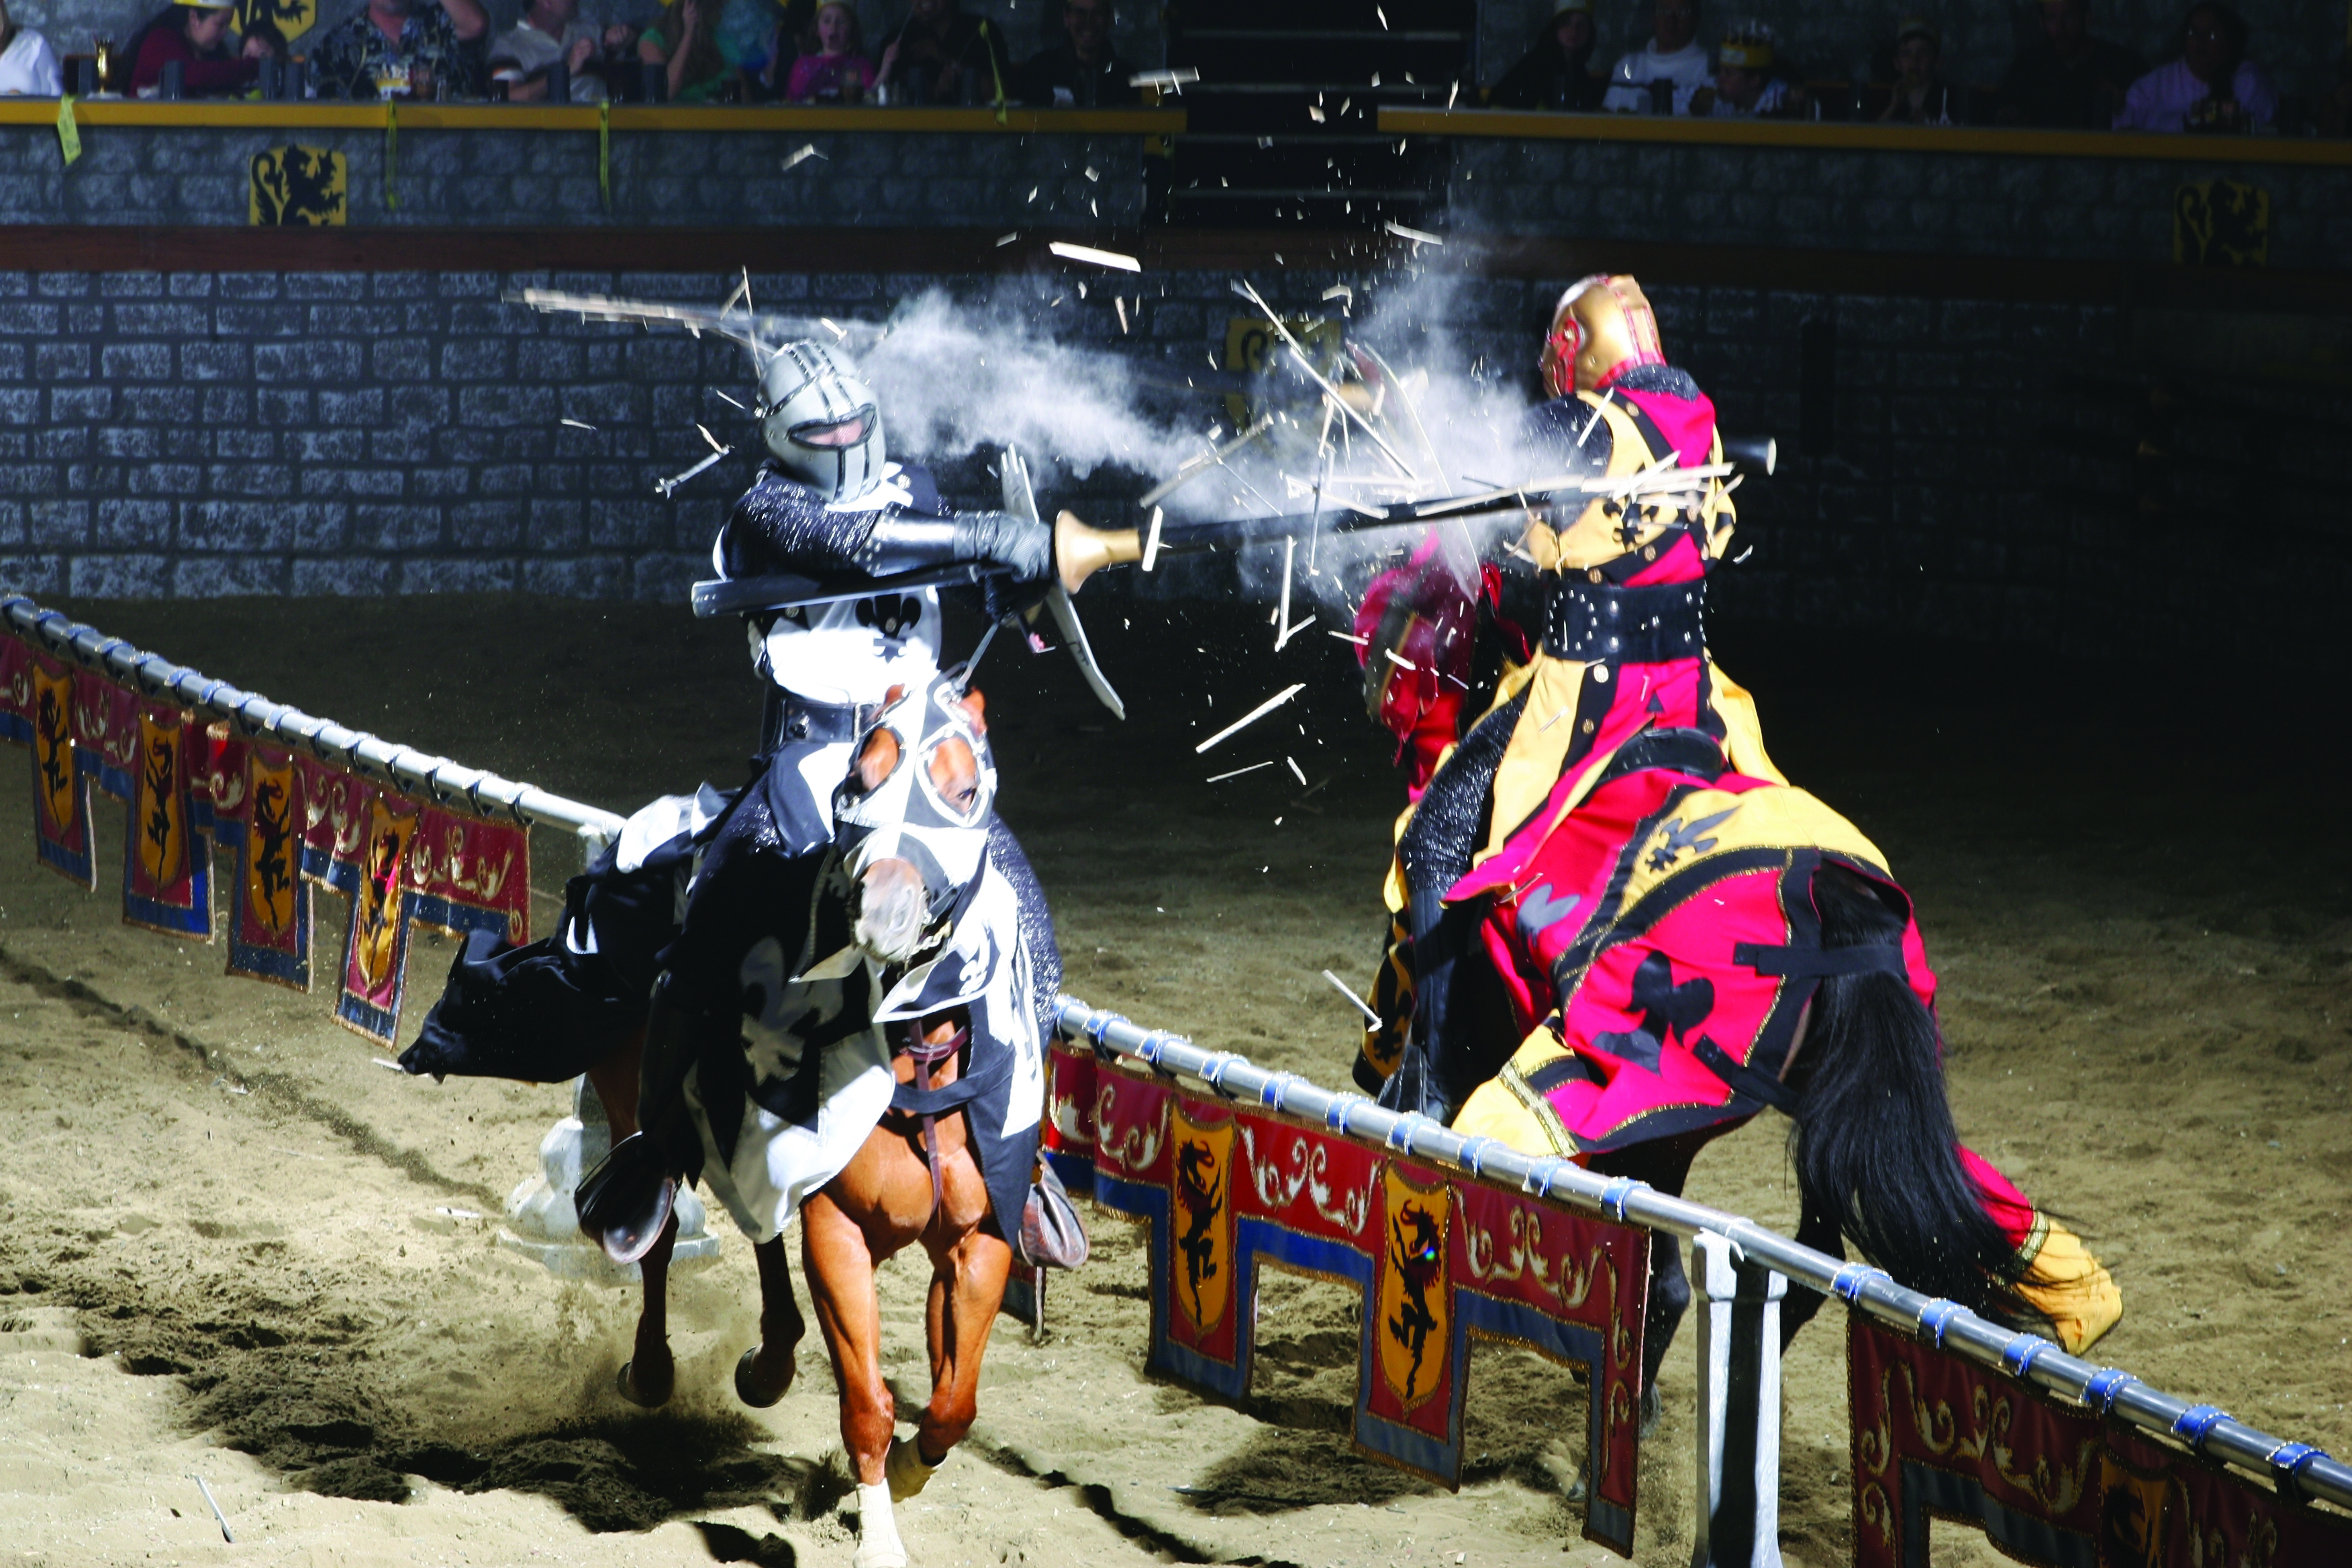 Medieval Times is a dinner theaters, dedicated to giving visitors a colorful and high decibel dose of entertainment King Arthur style.